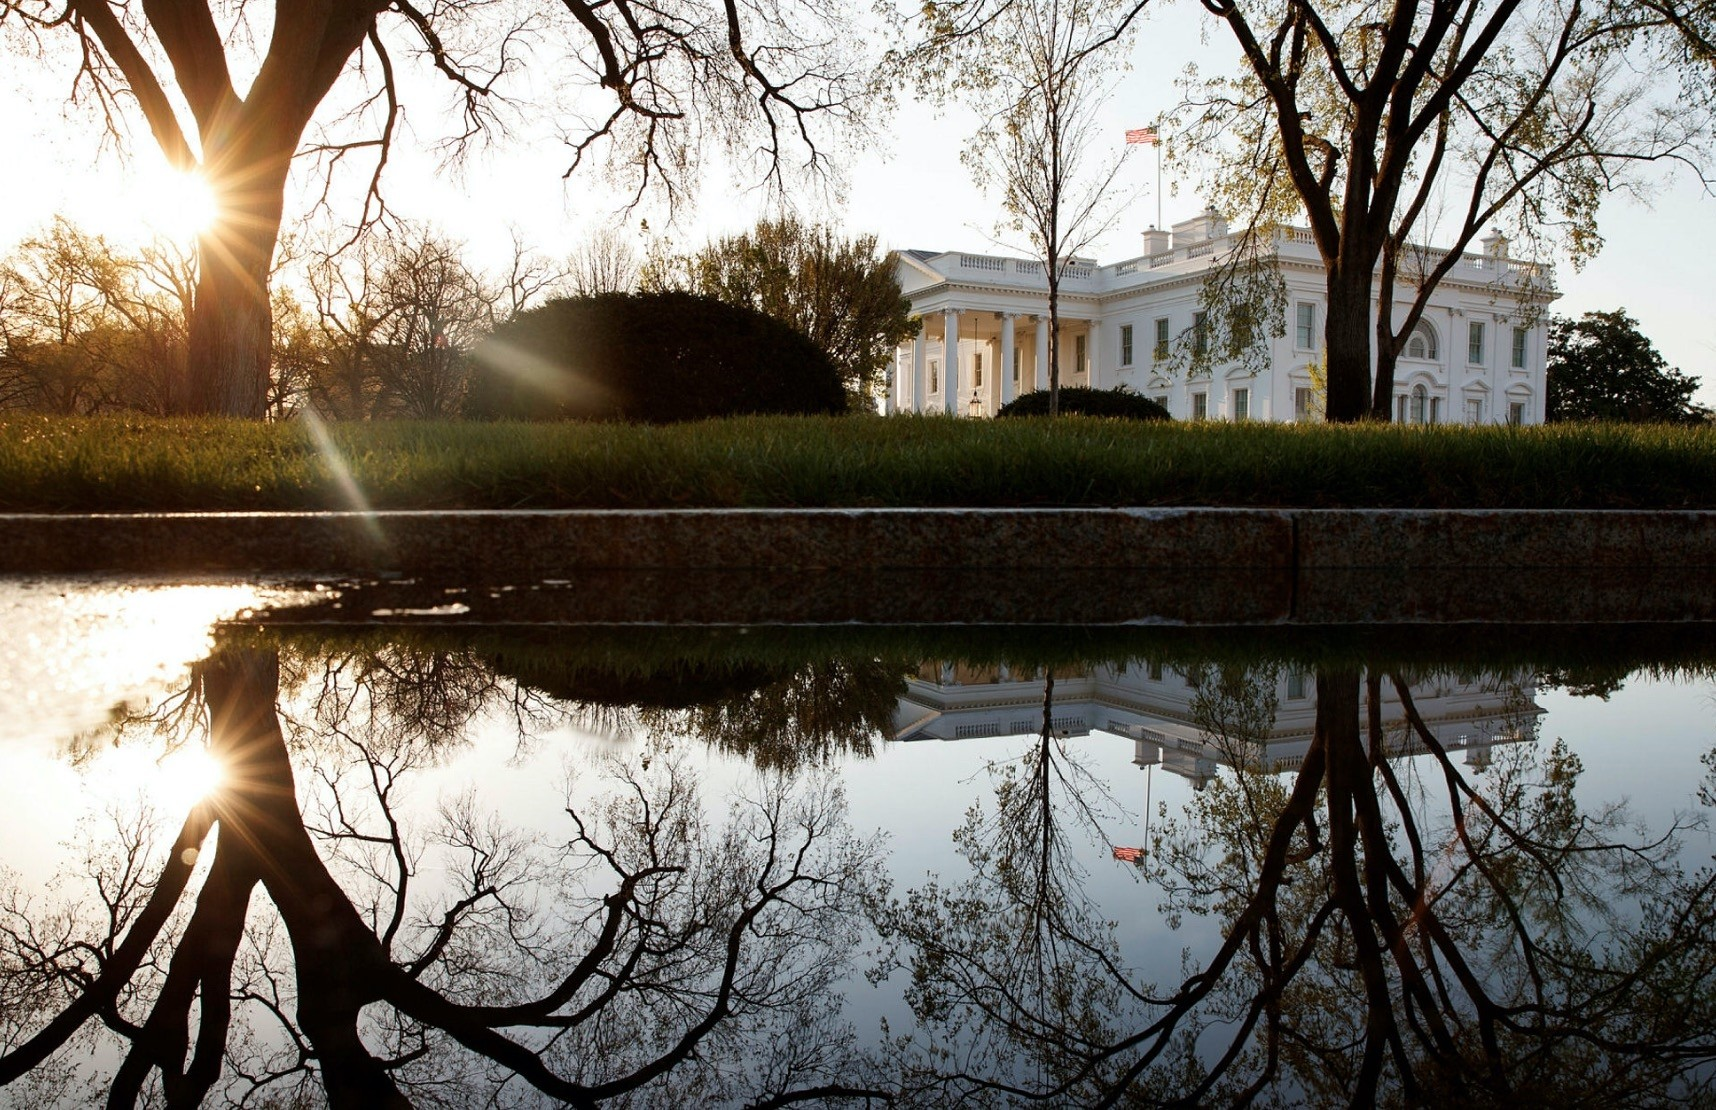 The White House is seen at sunrise in Washington, April 14, 2018.